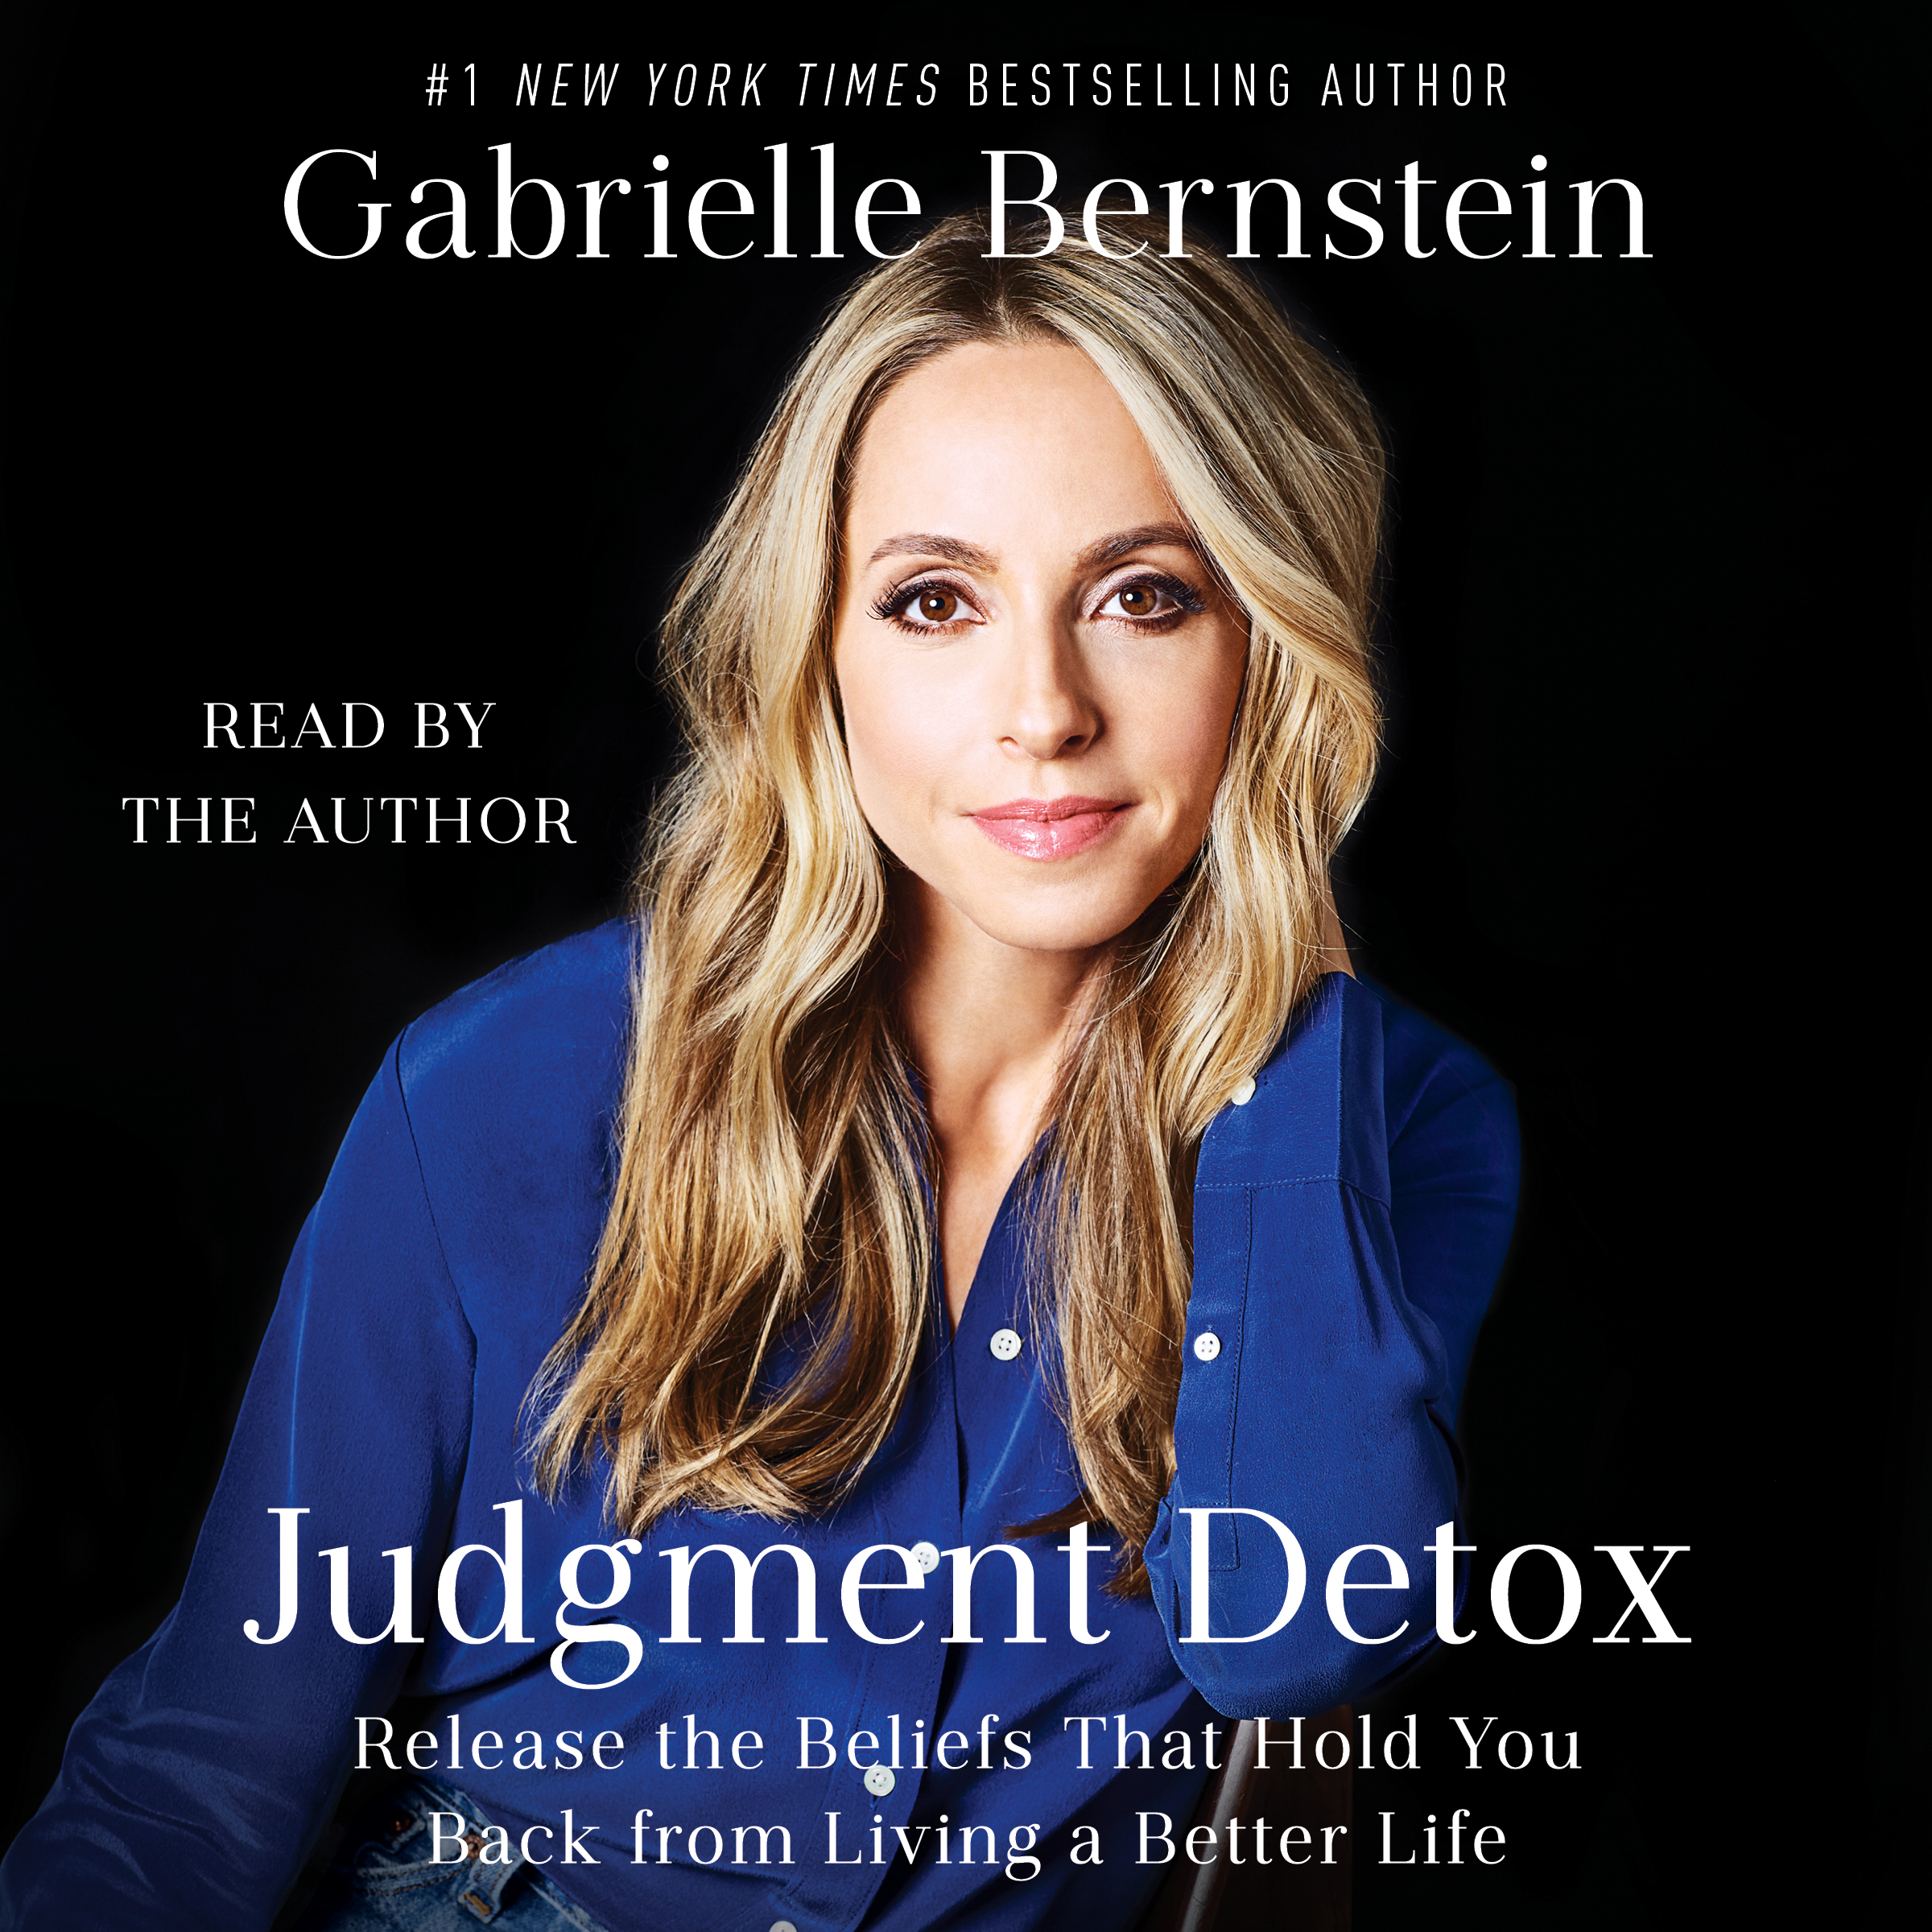 Judgment detox 9781508239642 hr